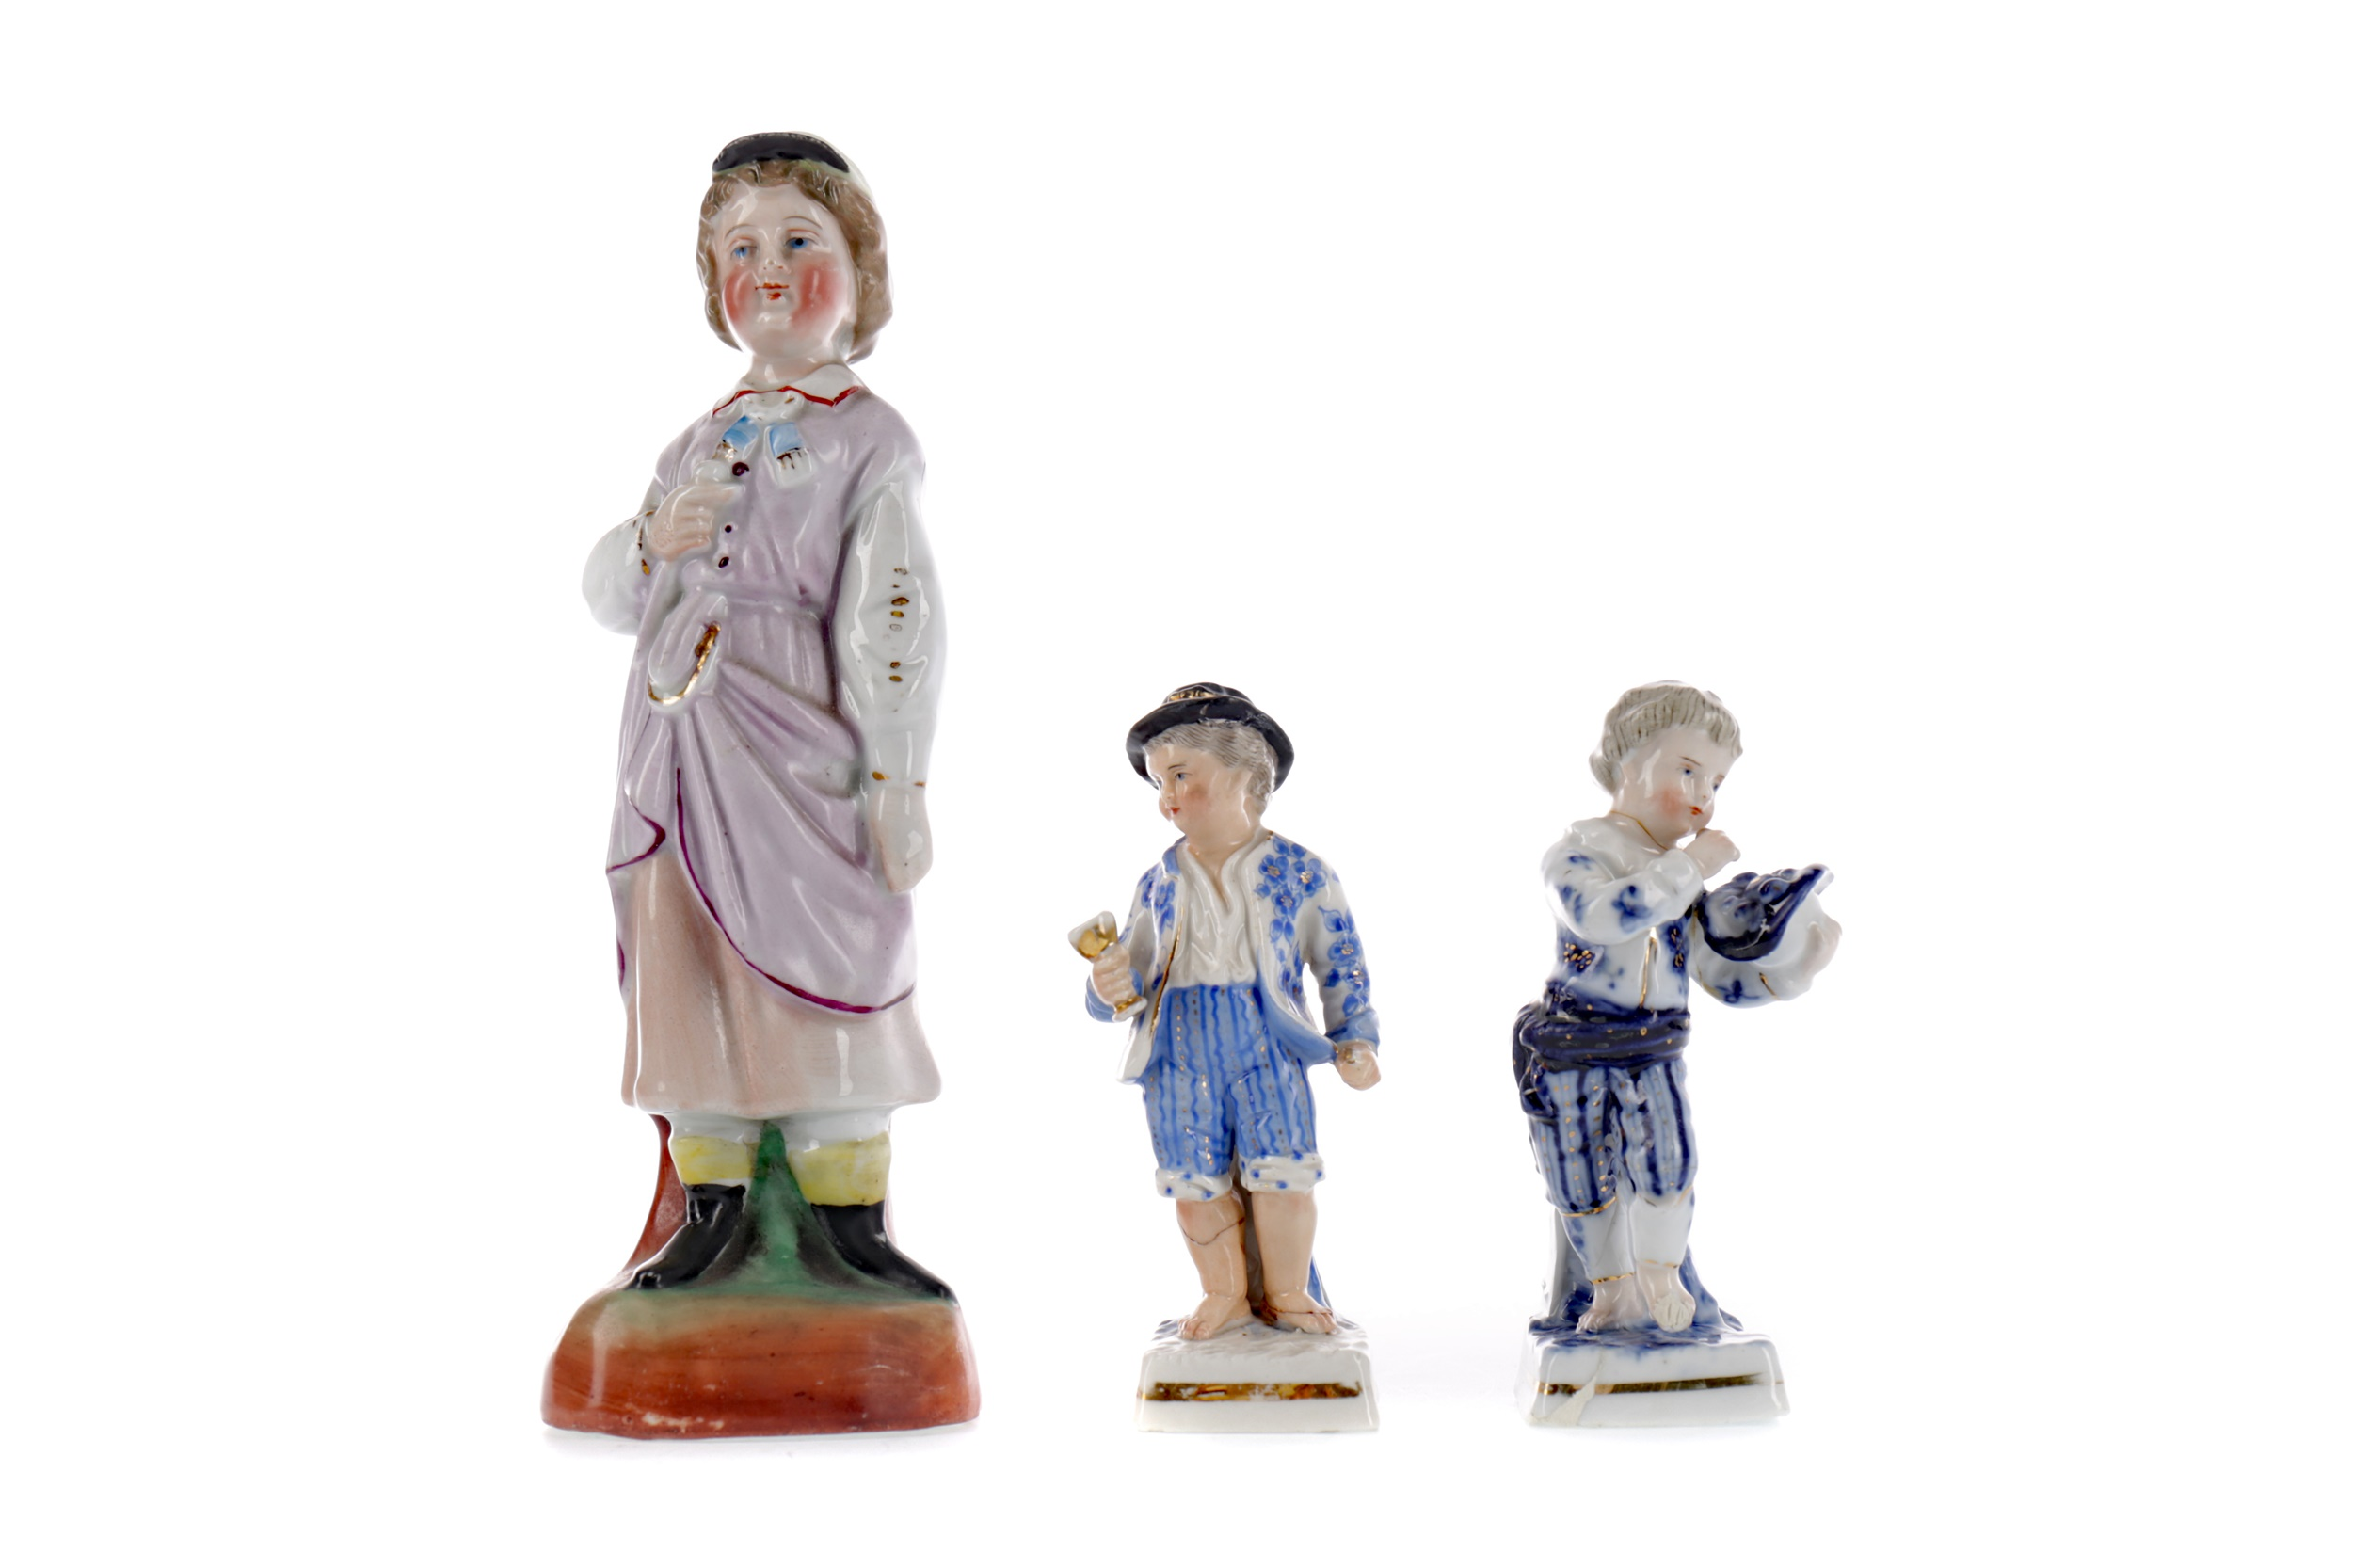 A LATE 19TH CENTURY SITZENDORF PORCELAIN FIGURE OF A BOY, AND TWO OTHERS